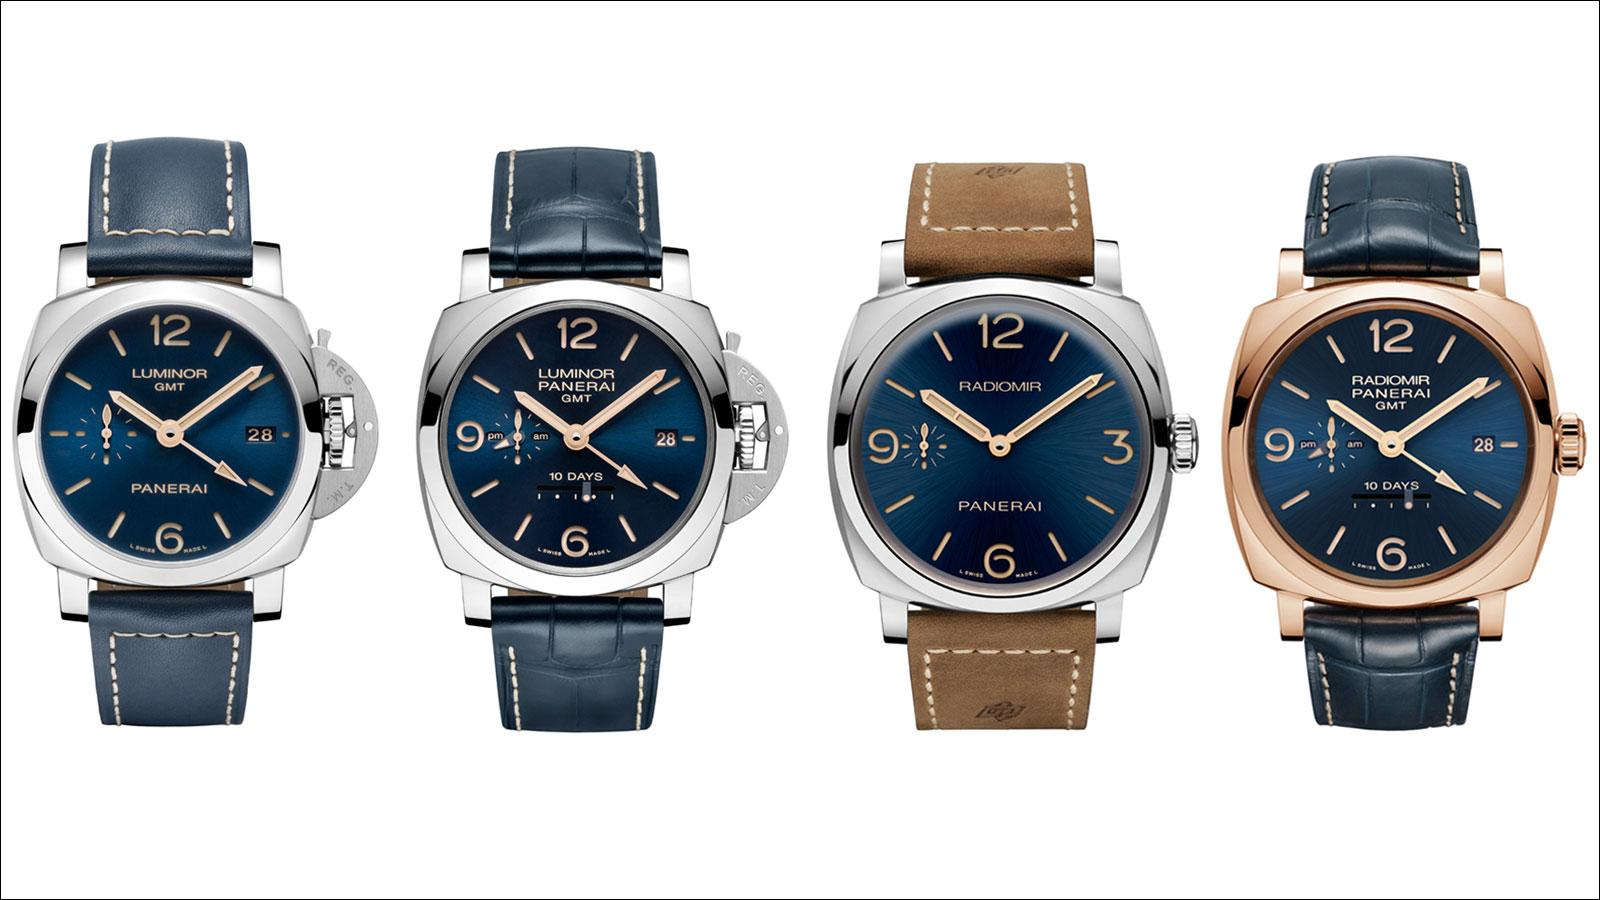 Panerai's Blue Dial Boutique Editions (left to right): Luminor 1950 3 Days GMT Automatic, Luminor 1950 10 days GMT Automatic, Radiomir 1940 3 Days, Radiomir 1940 10 Days Automatic Oro Rosso.